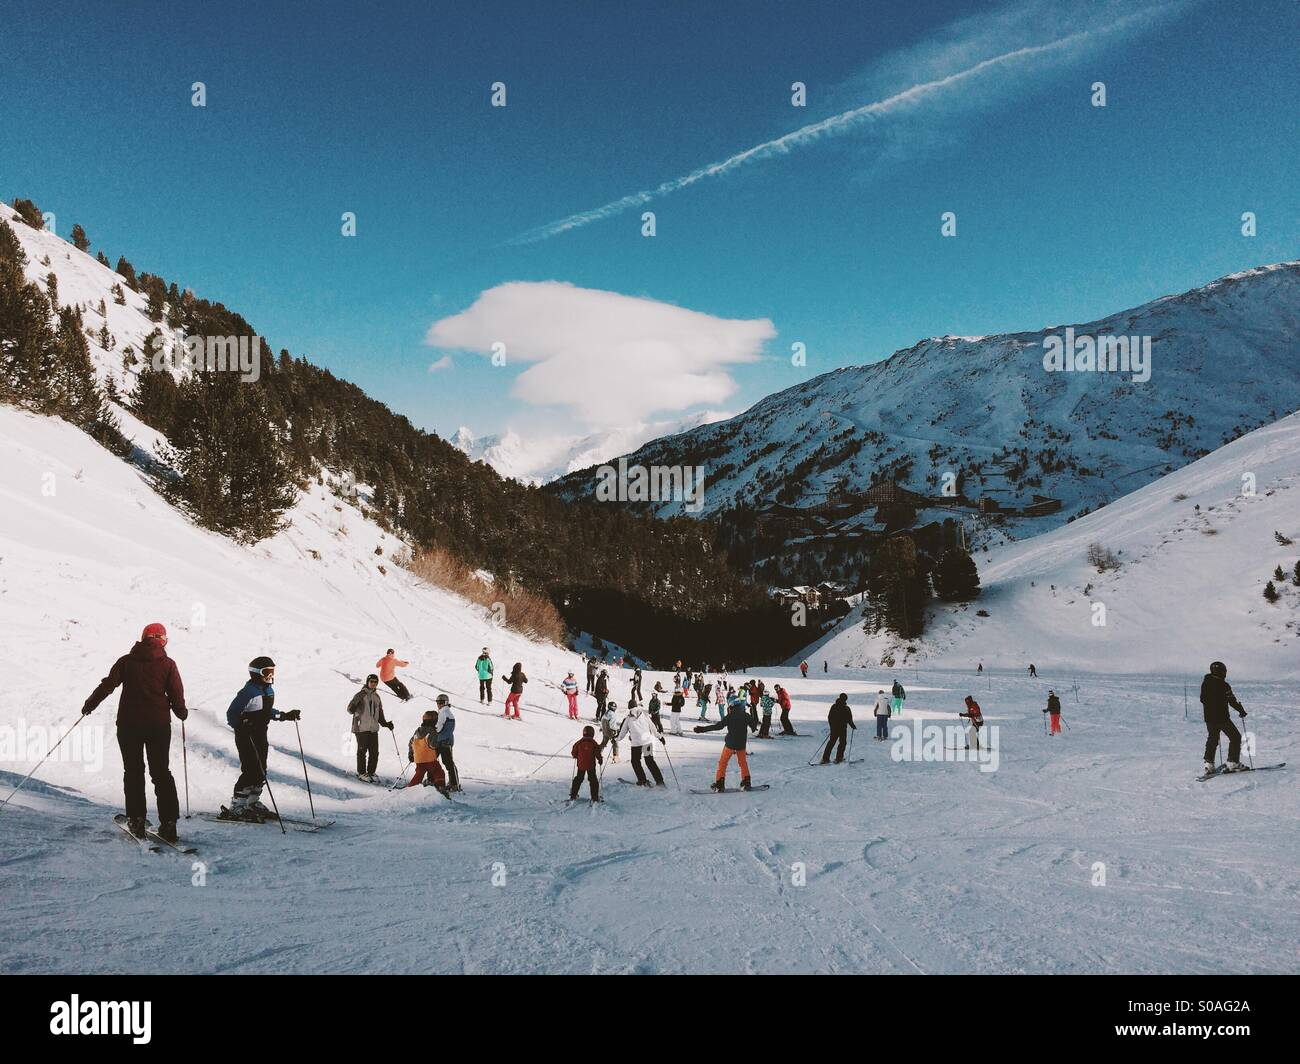 Skiing, Les Arcs, The Alps, France, Europe. - Stock Image